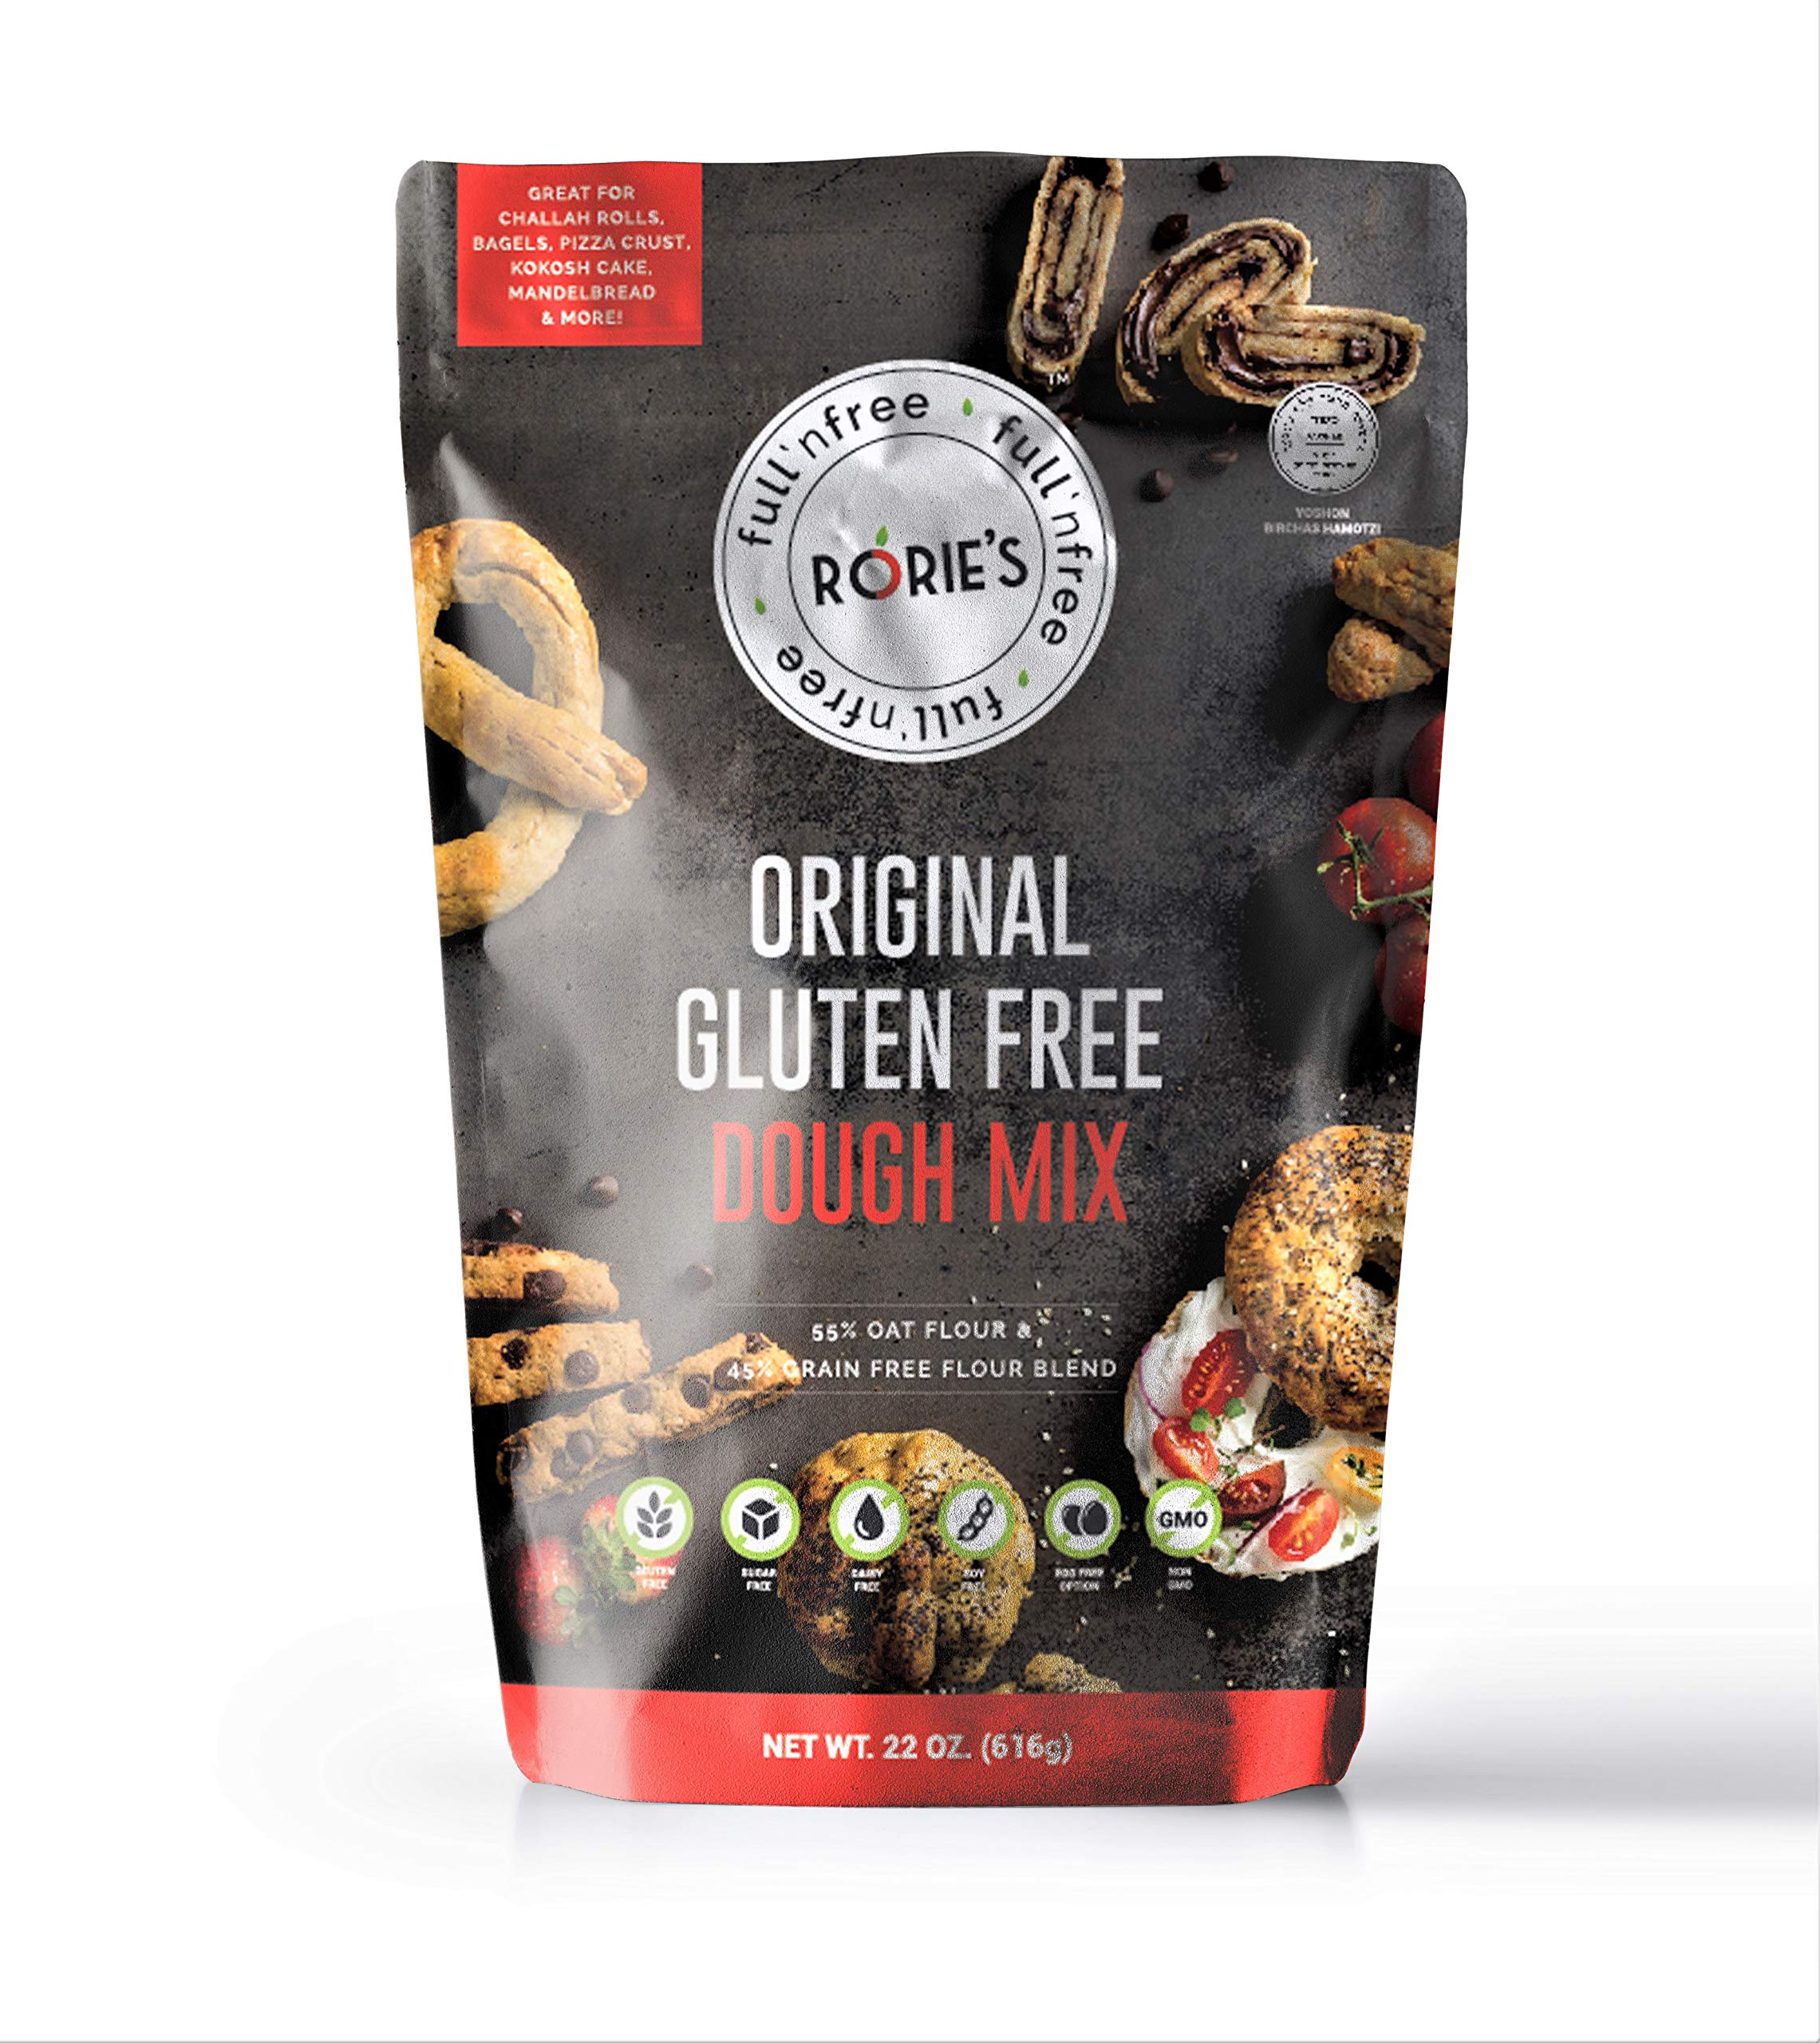 Rories Gluten Free Oat Dough Mix 22 oz (pack of 6) Living Full 'N free by Rorie's